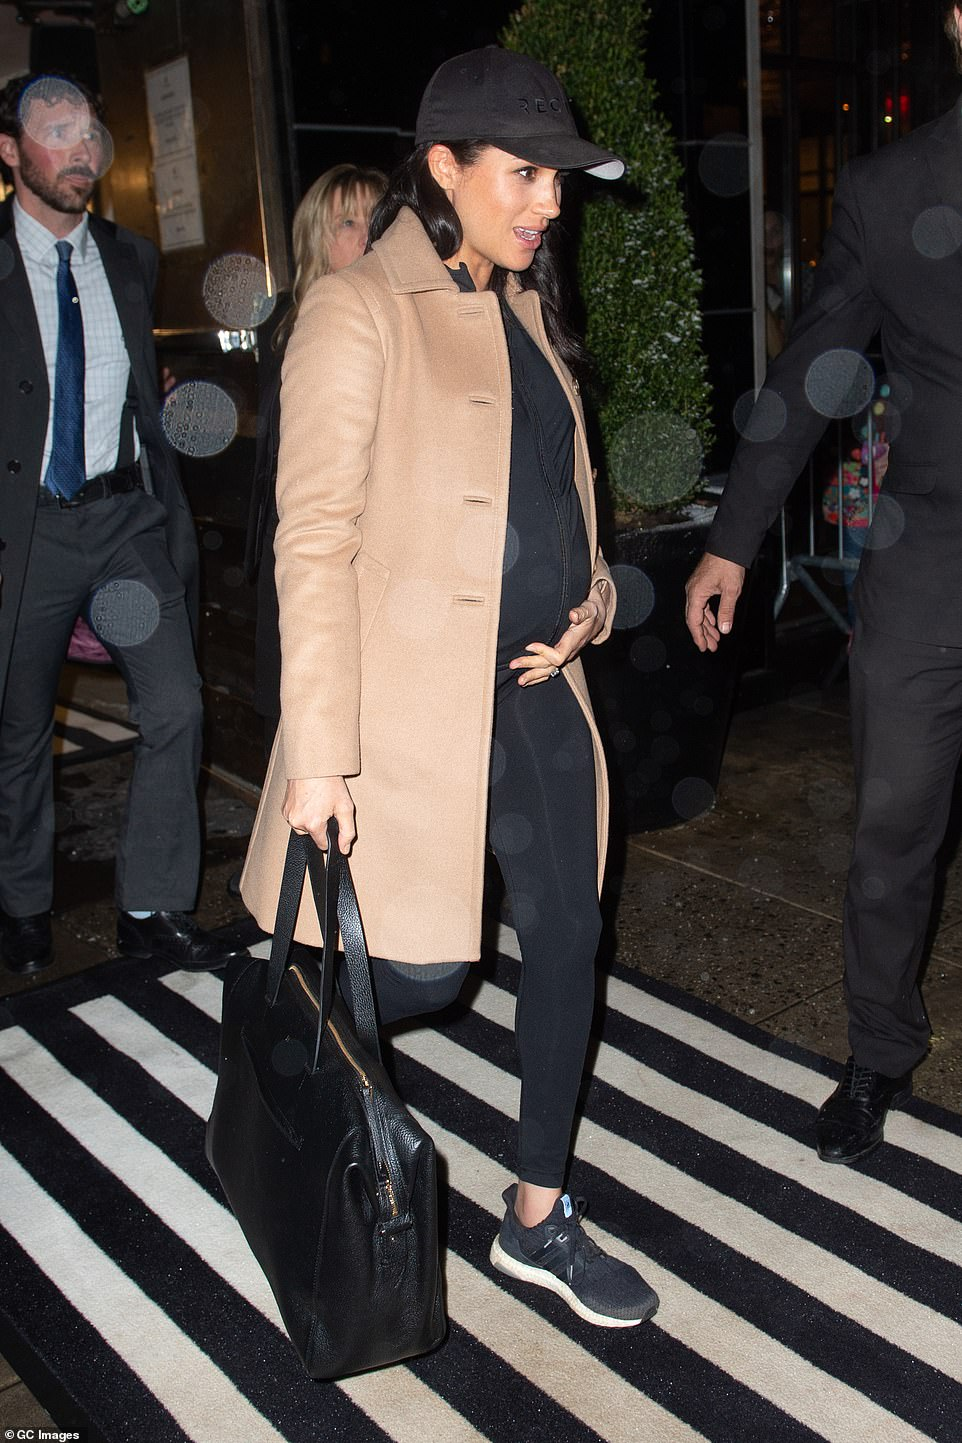 Stylish: The Duchess of Sussex was carrying a $395 leather tote bag from Cuyana, a brand that she is known to favor, and one which her makeup artist Daniel Martin has also partnered with in the past